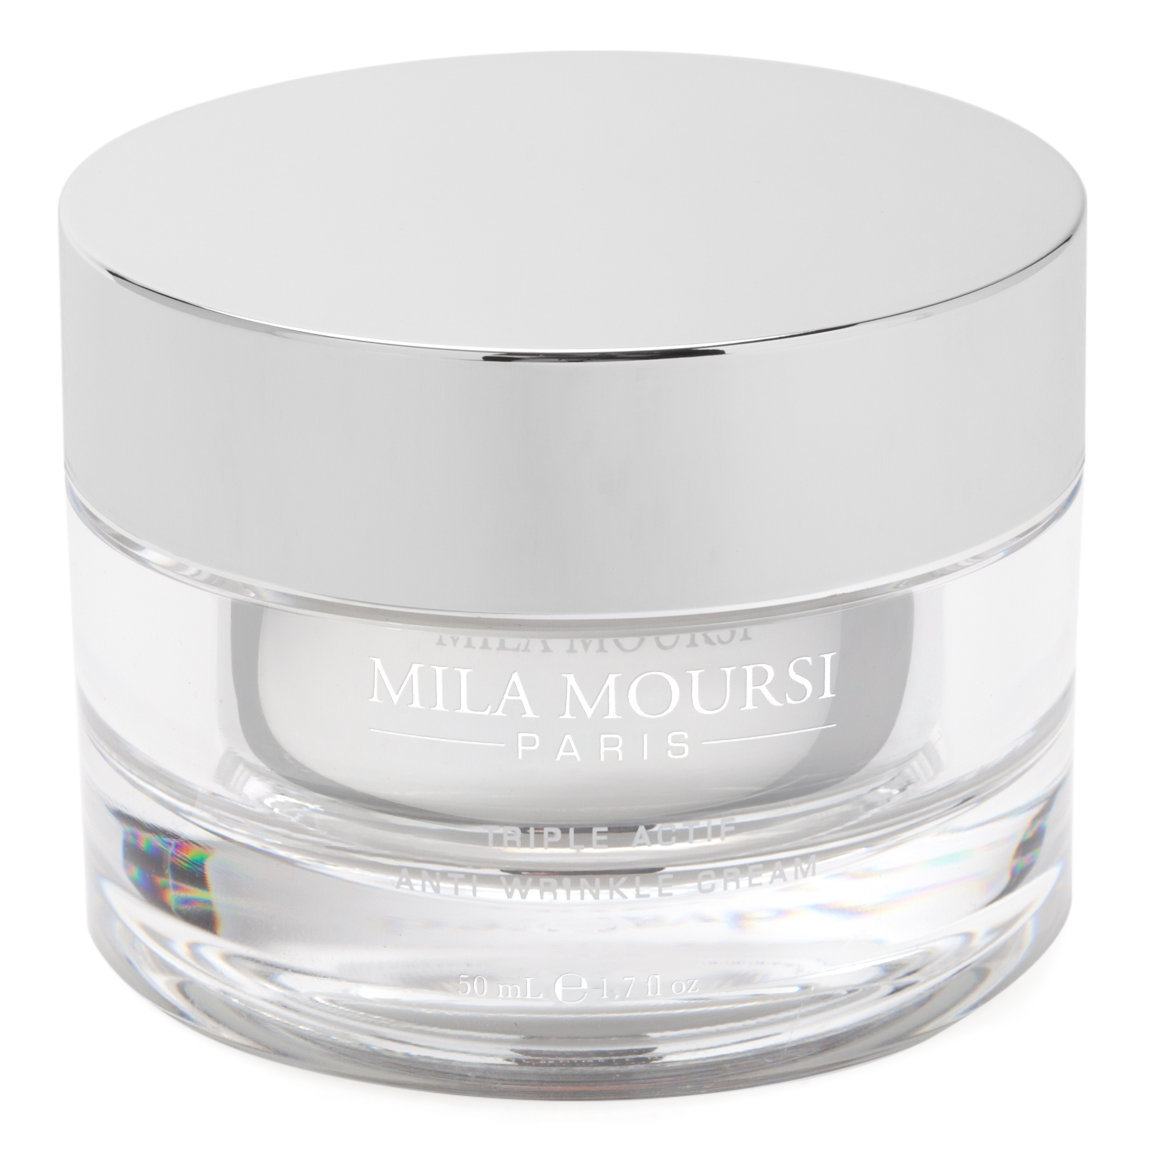 Mila Moursi Triple Actif Anti-Wrinkle Cream product swatch.